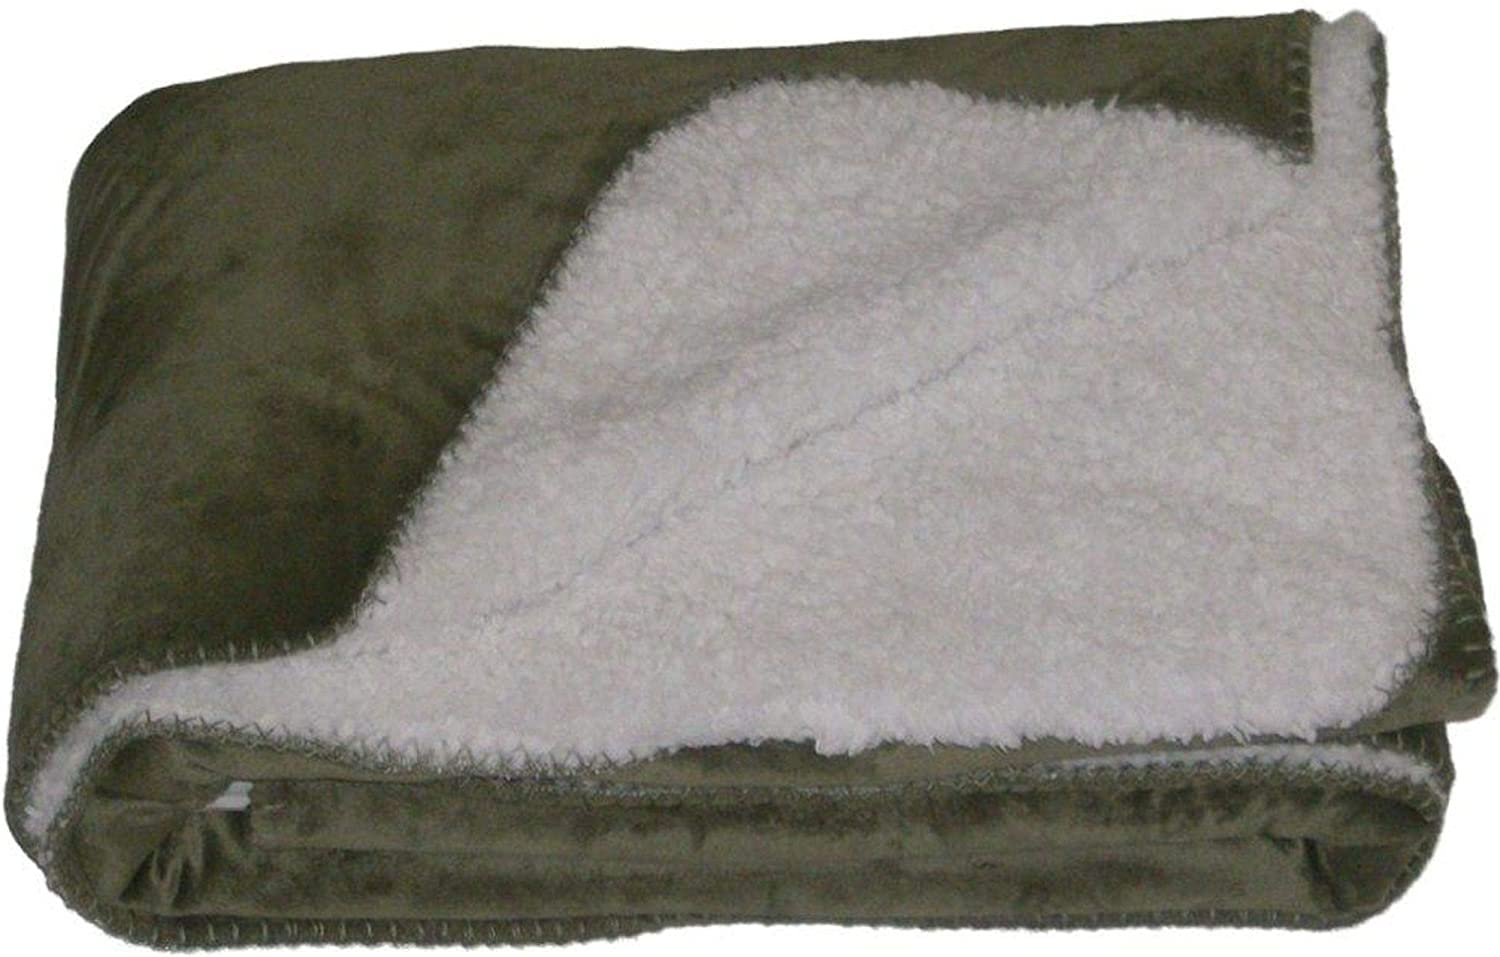 NorthCrest Home Sherpa Micromink Green Oversized Soft Throw Blanket